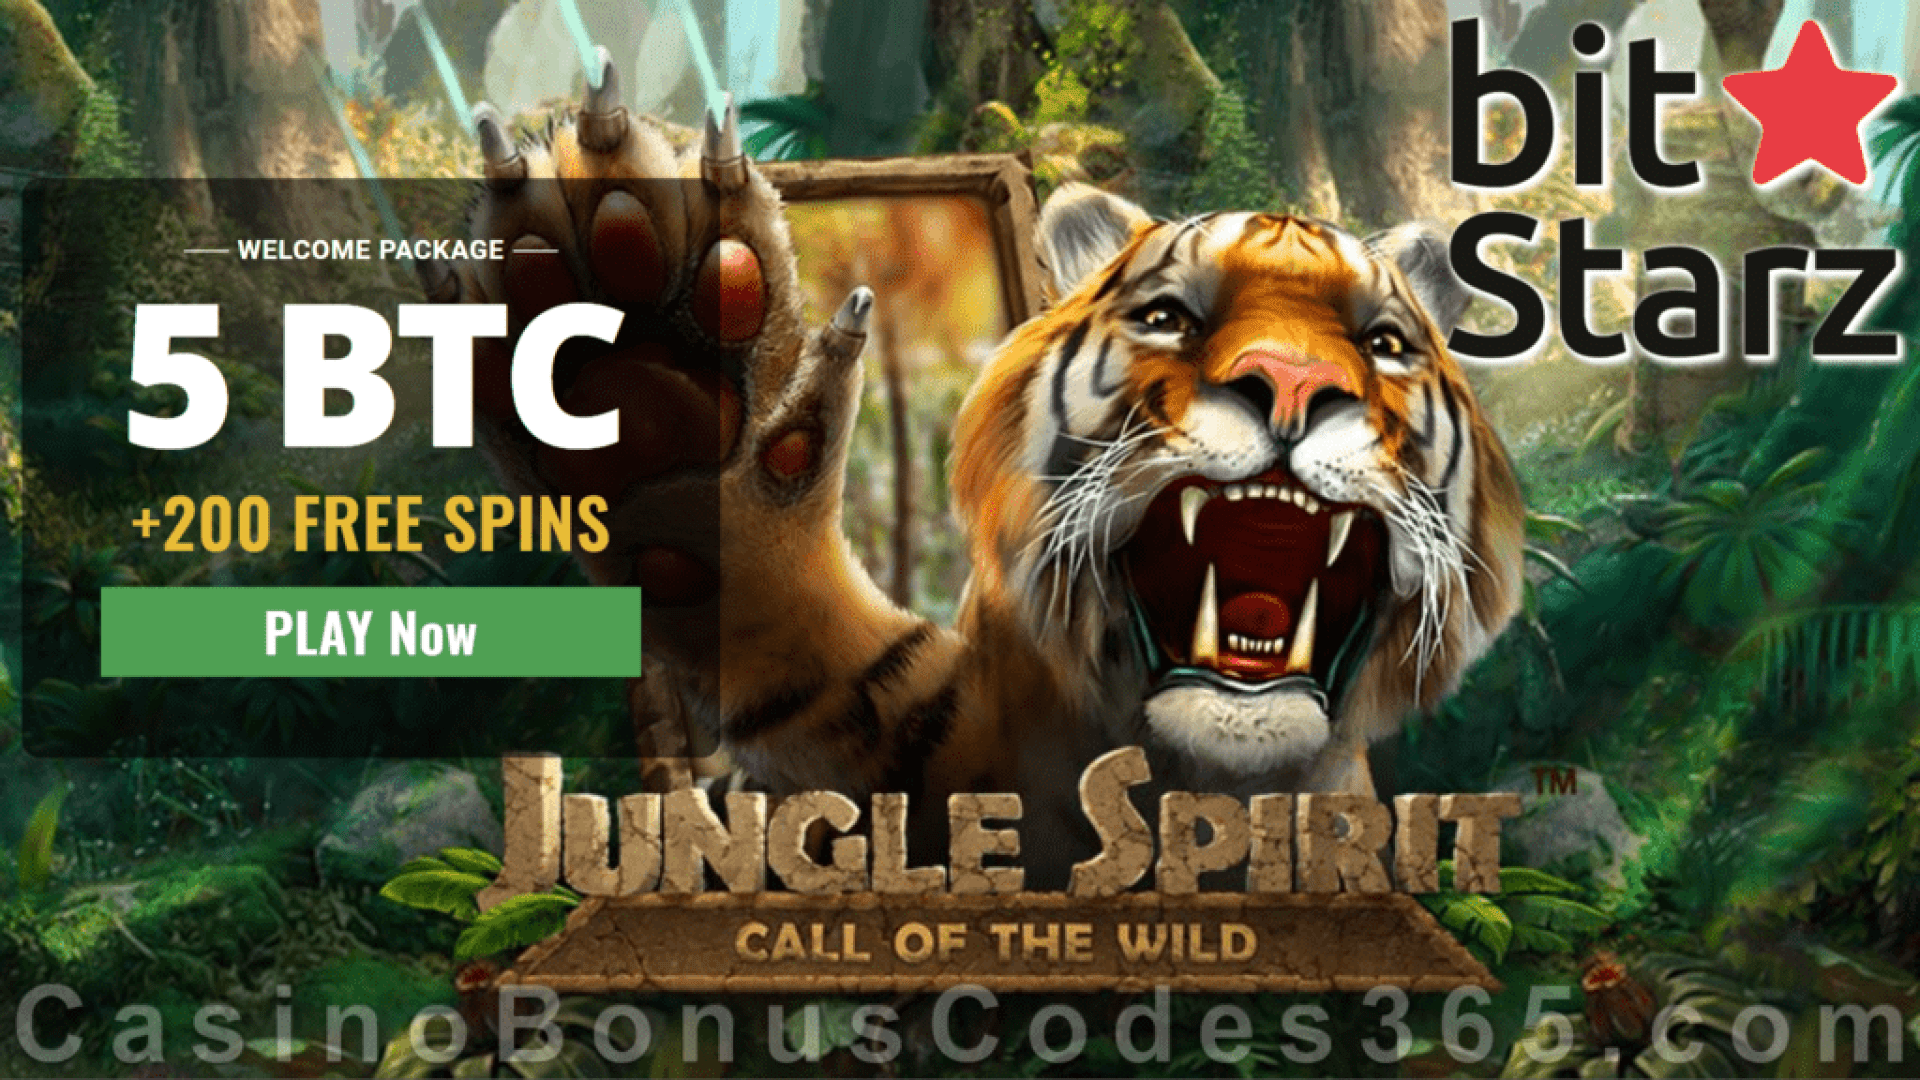 Bitstarz Casino 5 BTC plus 200 FREE Spins Welcome Deal Jungle Spirit Call of the Wild